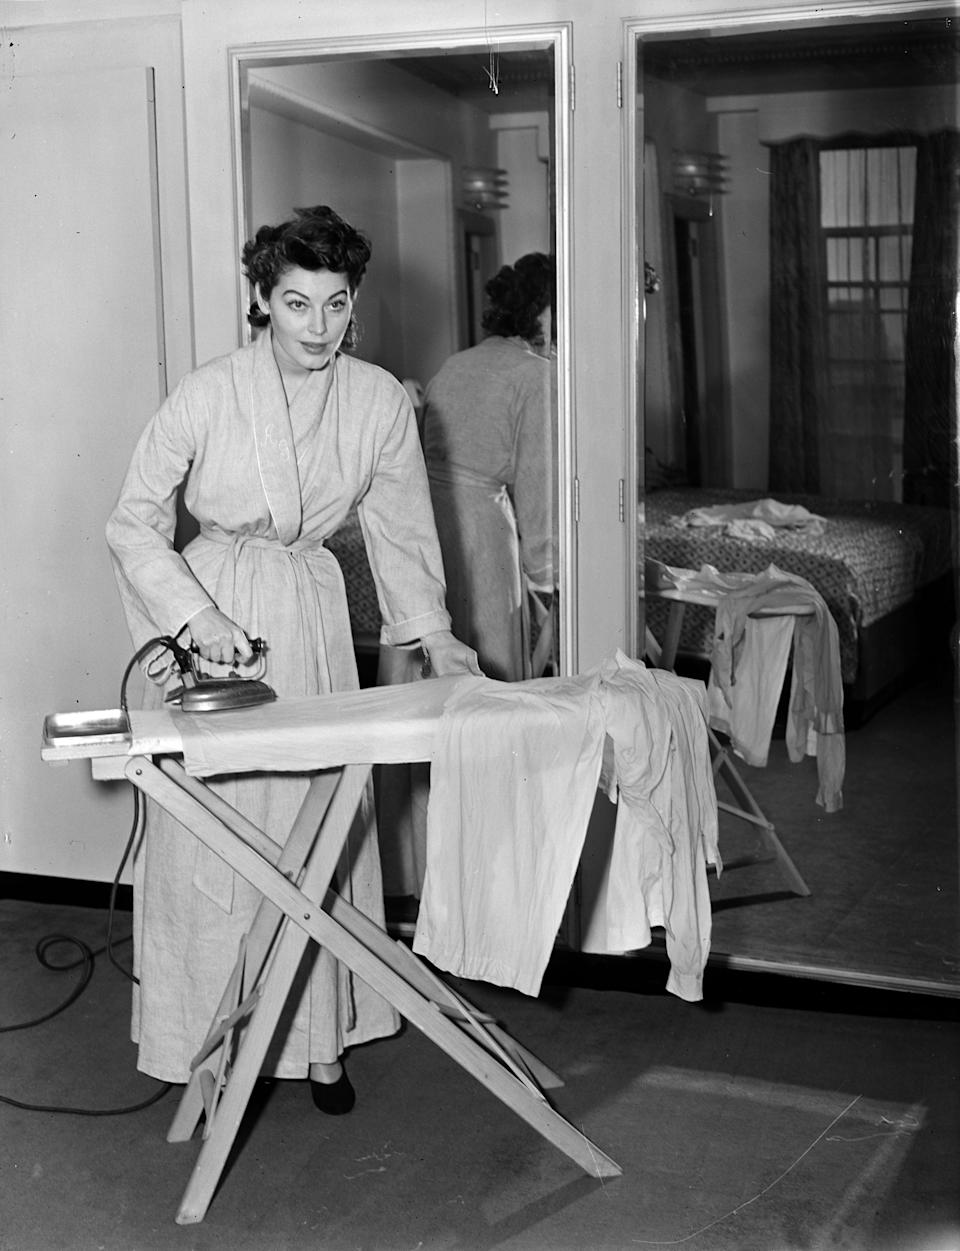 Gardner takes a break from the glitter to iron her pajamas in this 1950 photo.